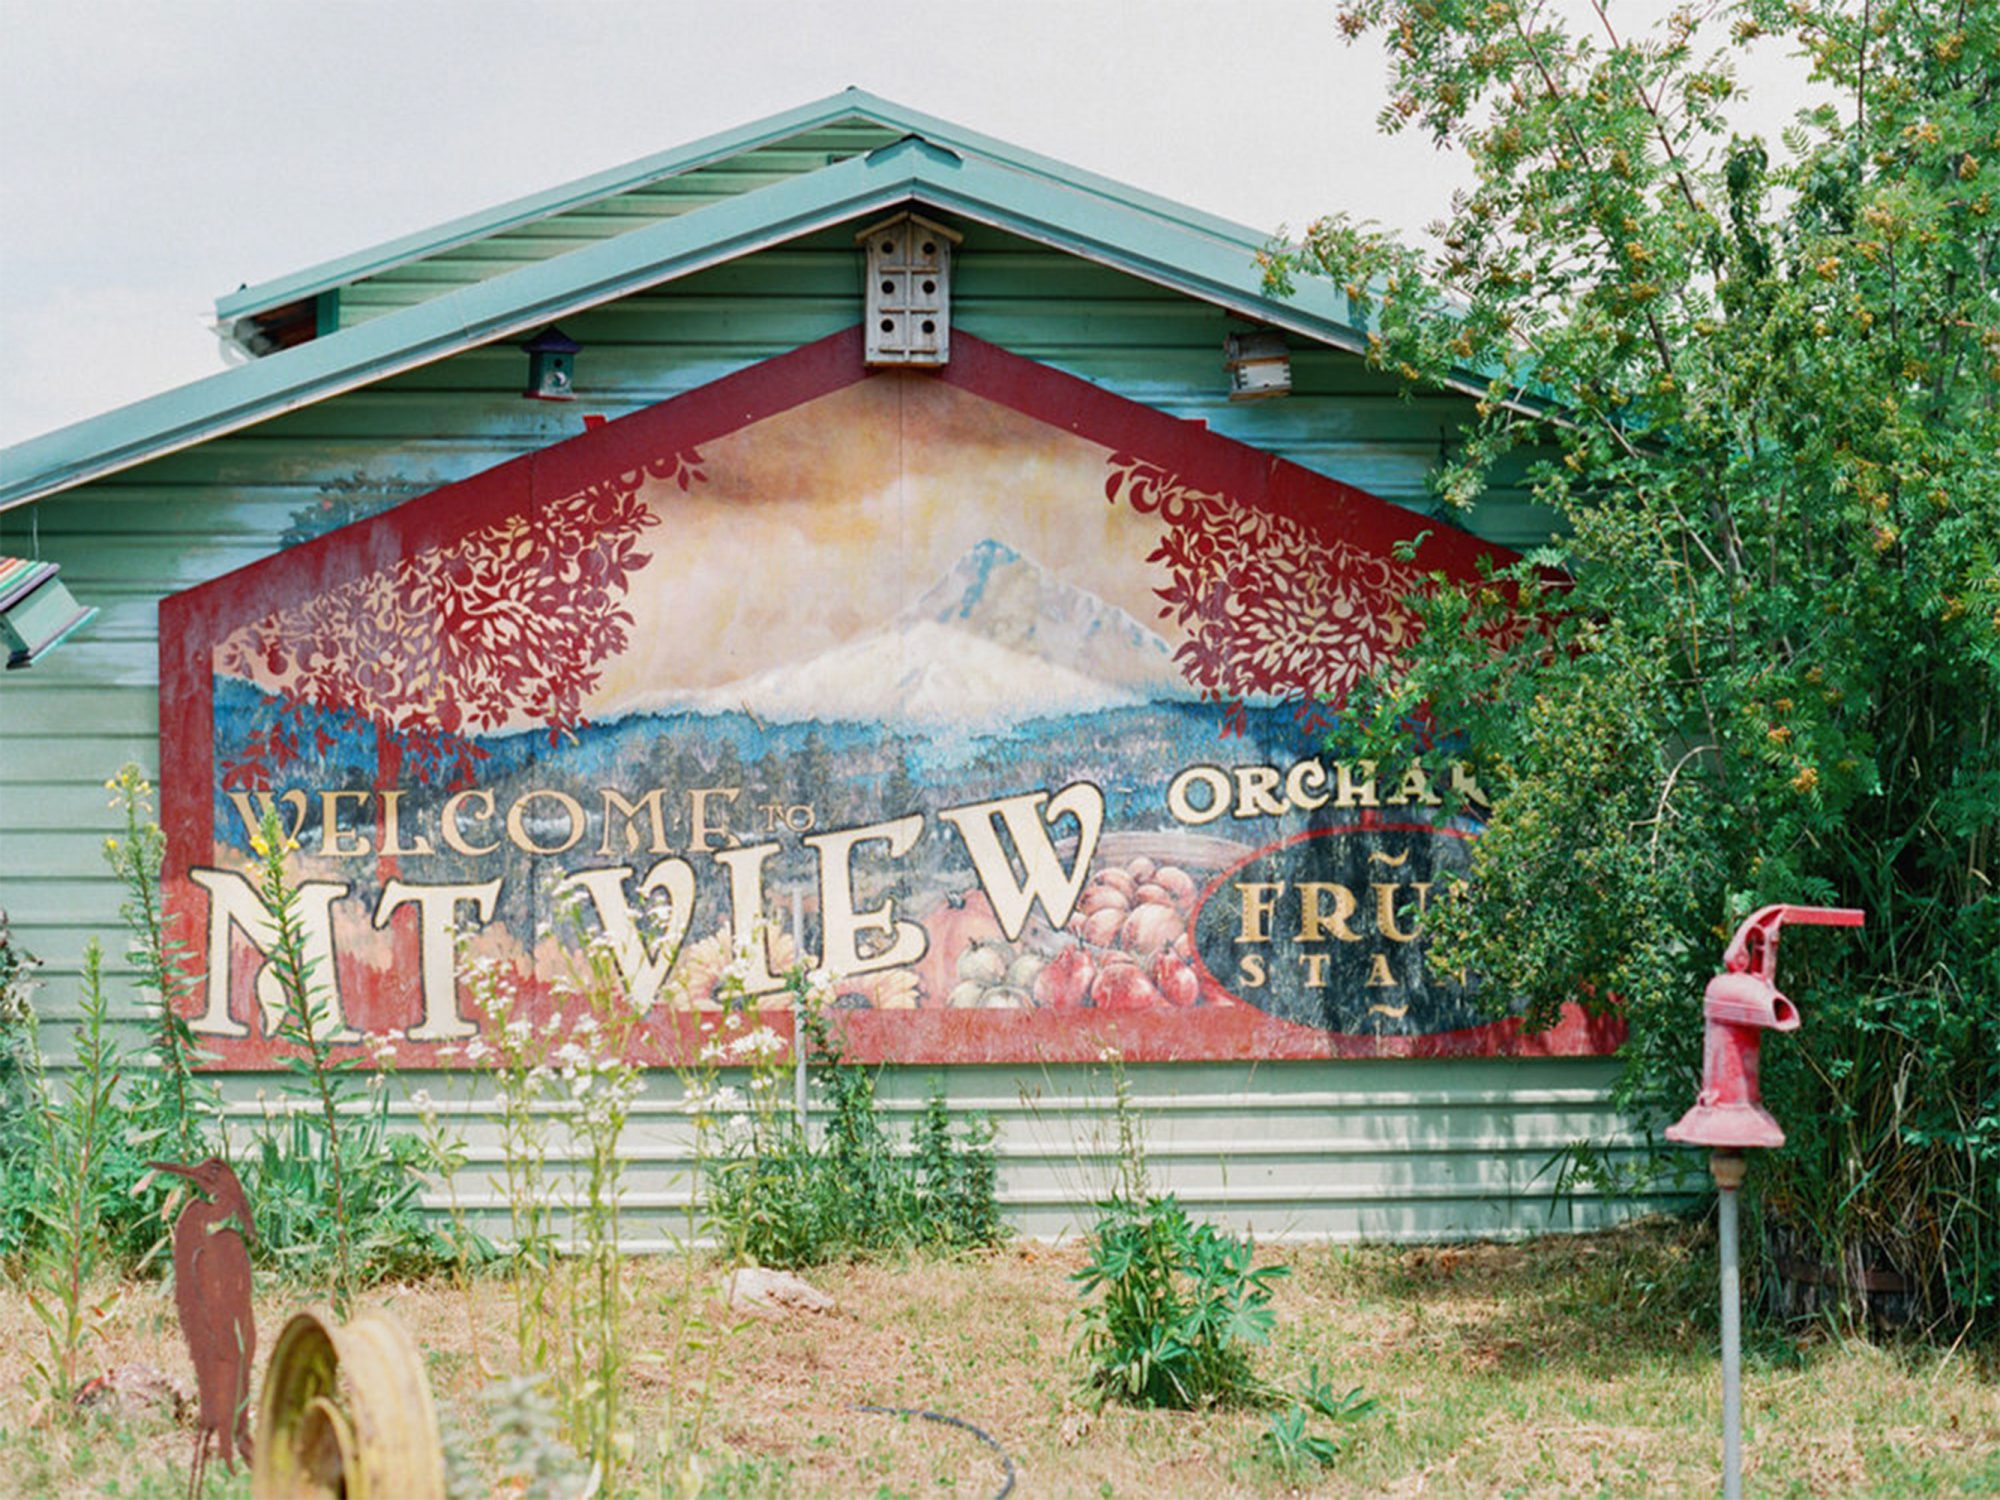 Mt. View Orchards and Cidery Fruit Stand